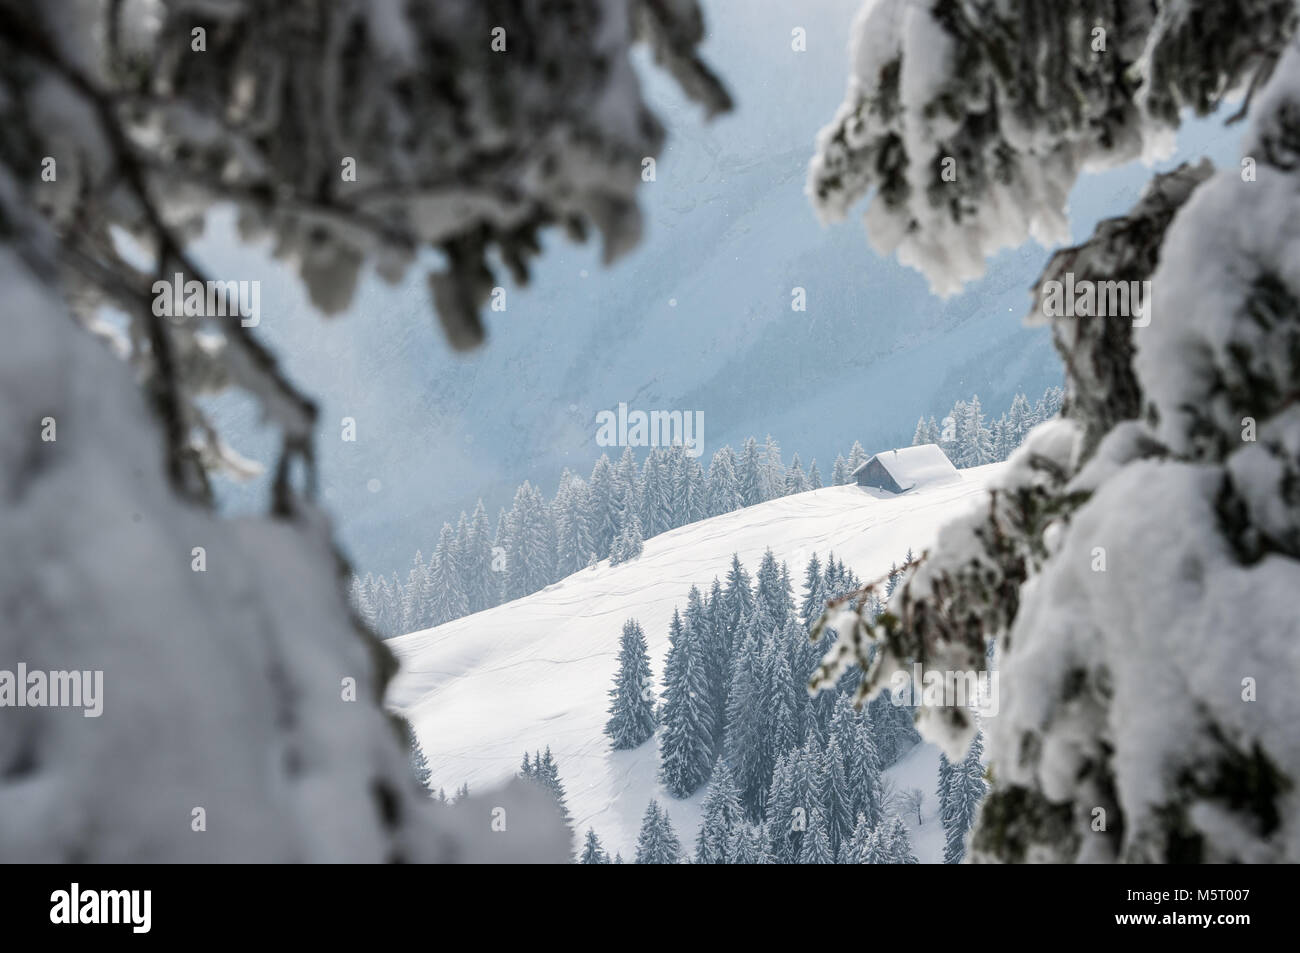 25 February 2018, Germany, Eck: Ice cristals, snow and fog cover the frozen forest and landscape of Bavaria. Photo: - Stock Image